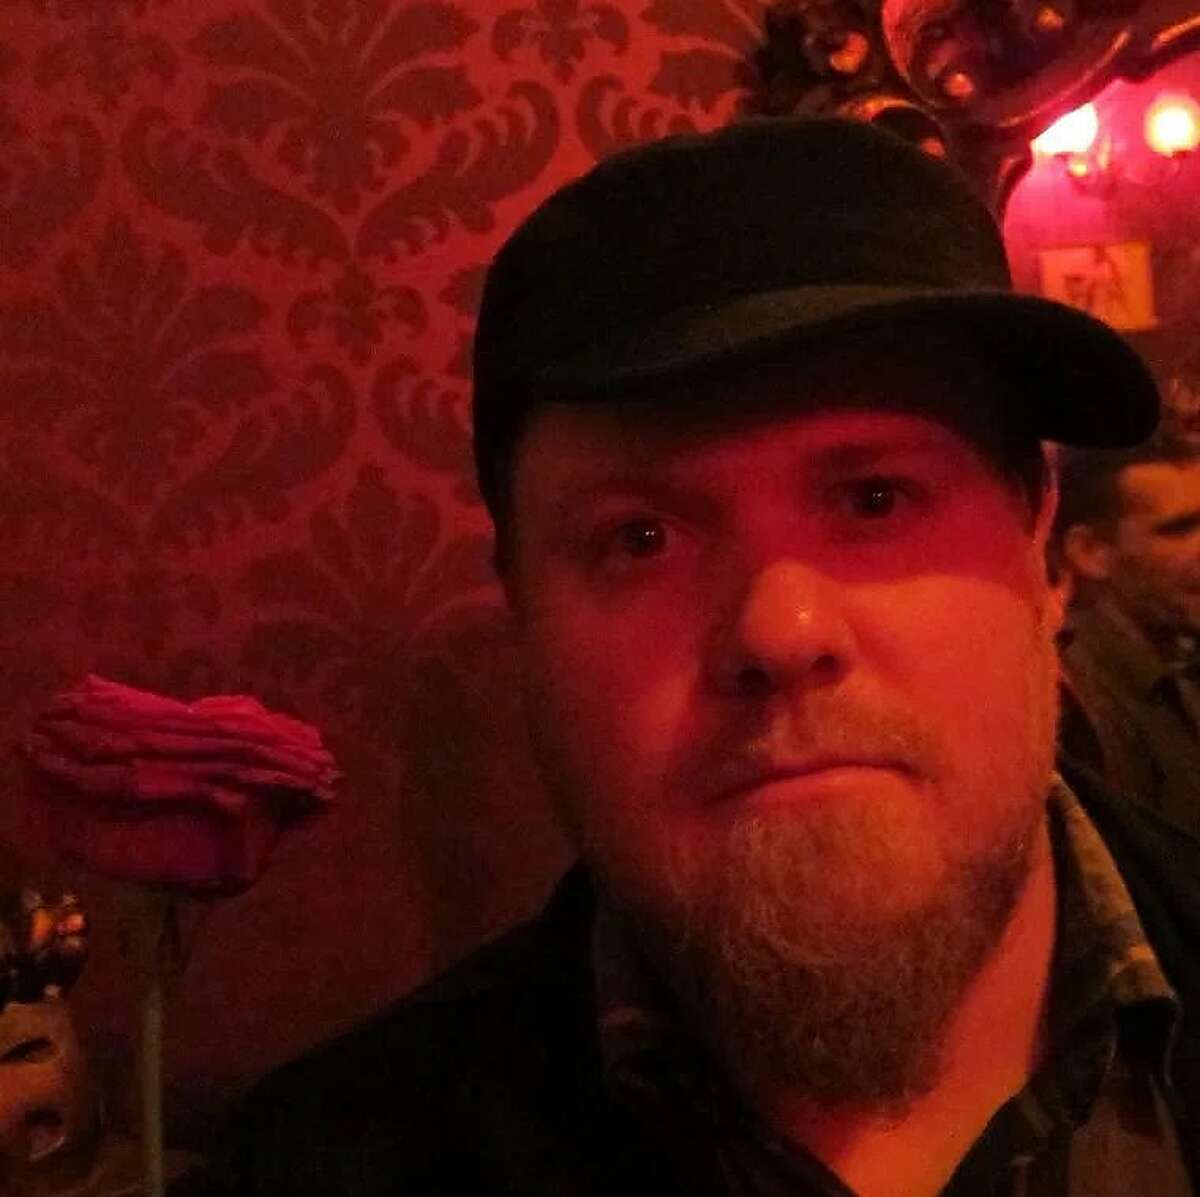 Barrett Clark, a 35-year-old sound engineer and DJ, was among the 36 victims of the devastating Oakland warehouse fire.